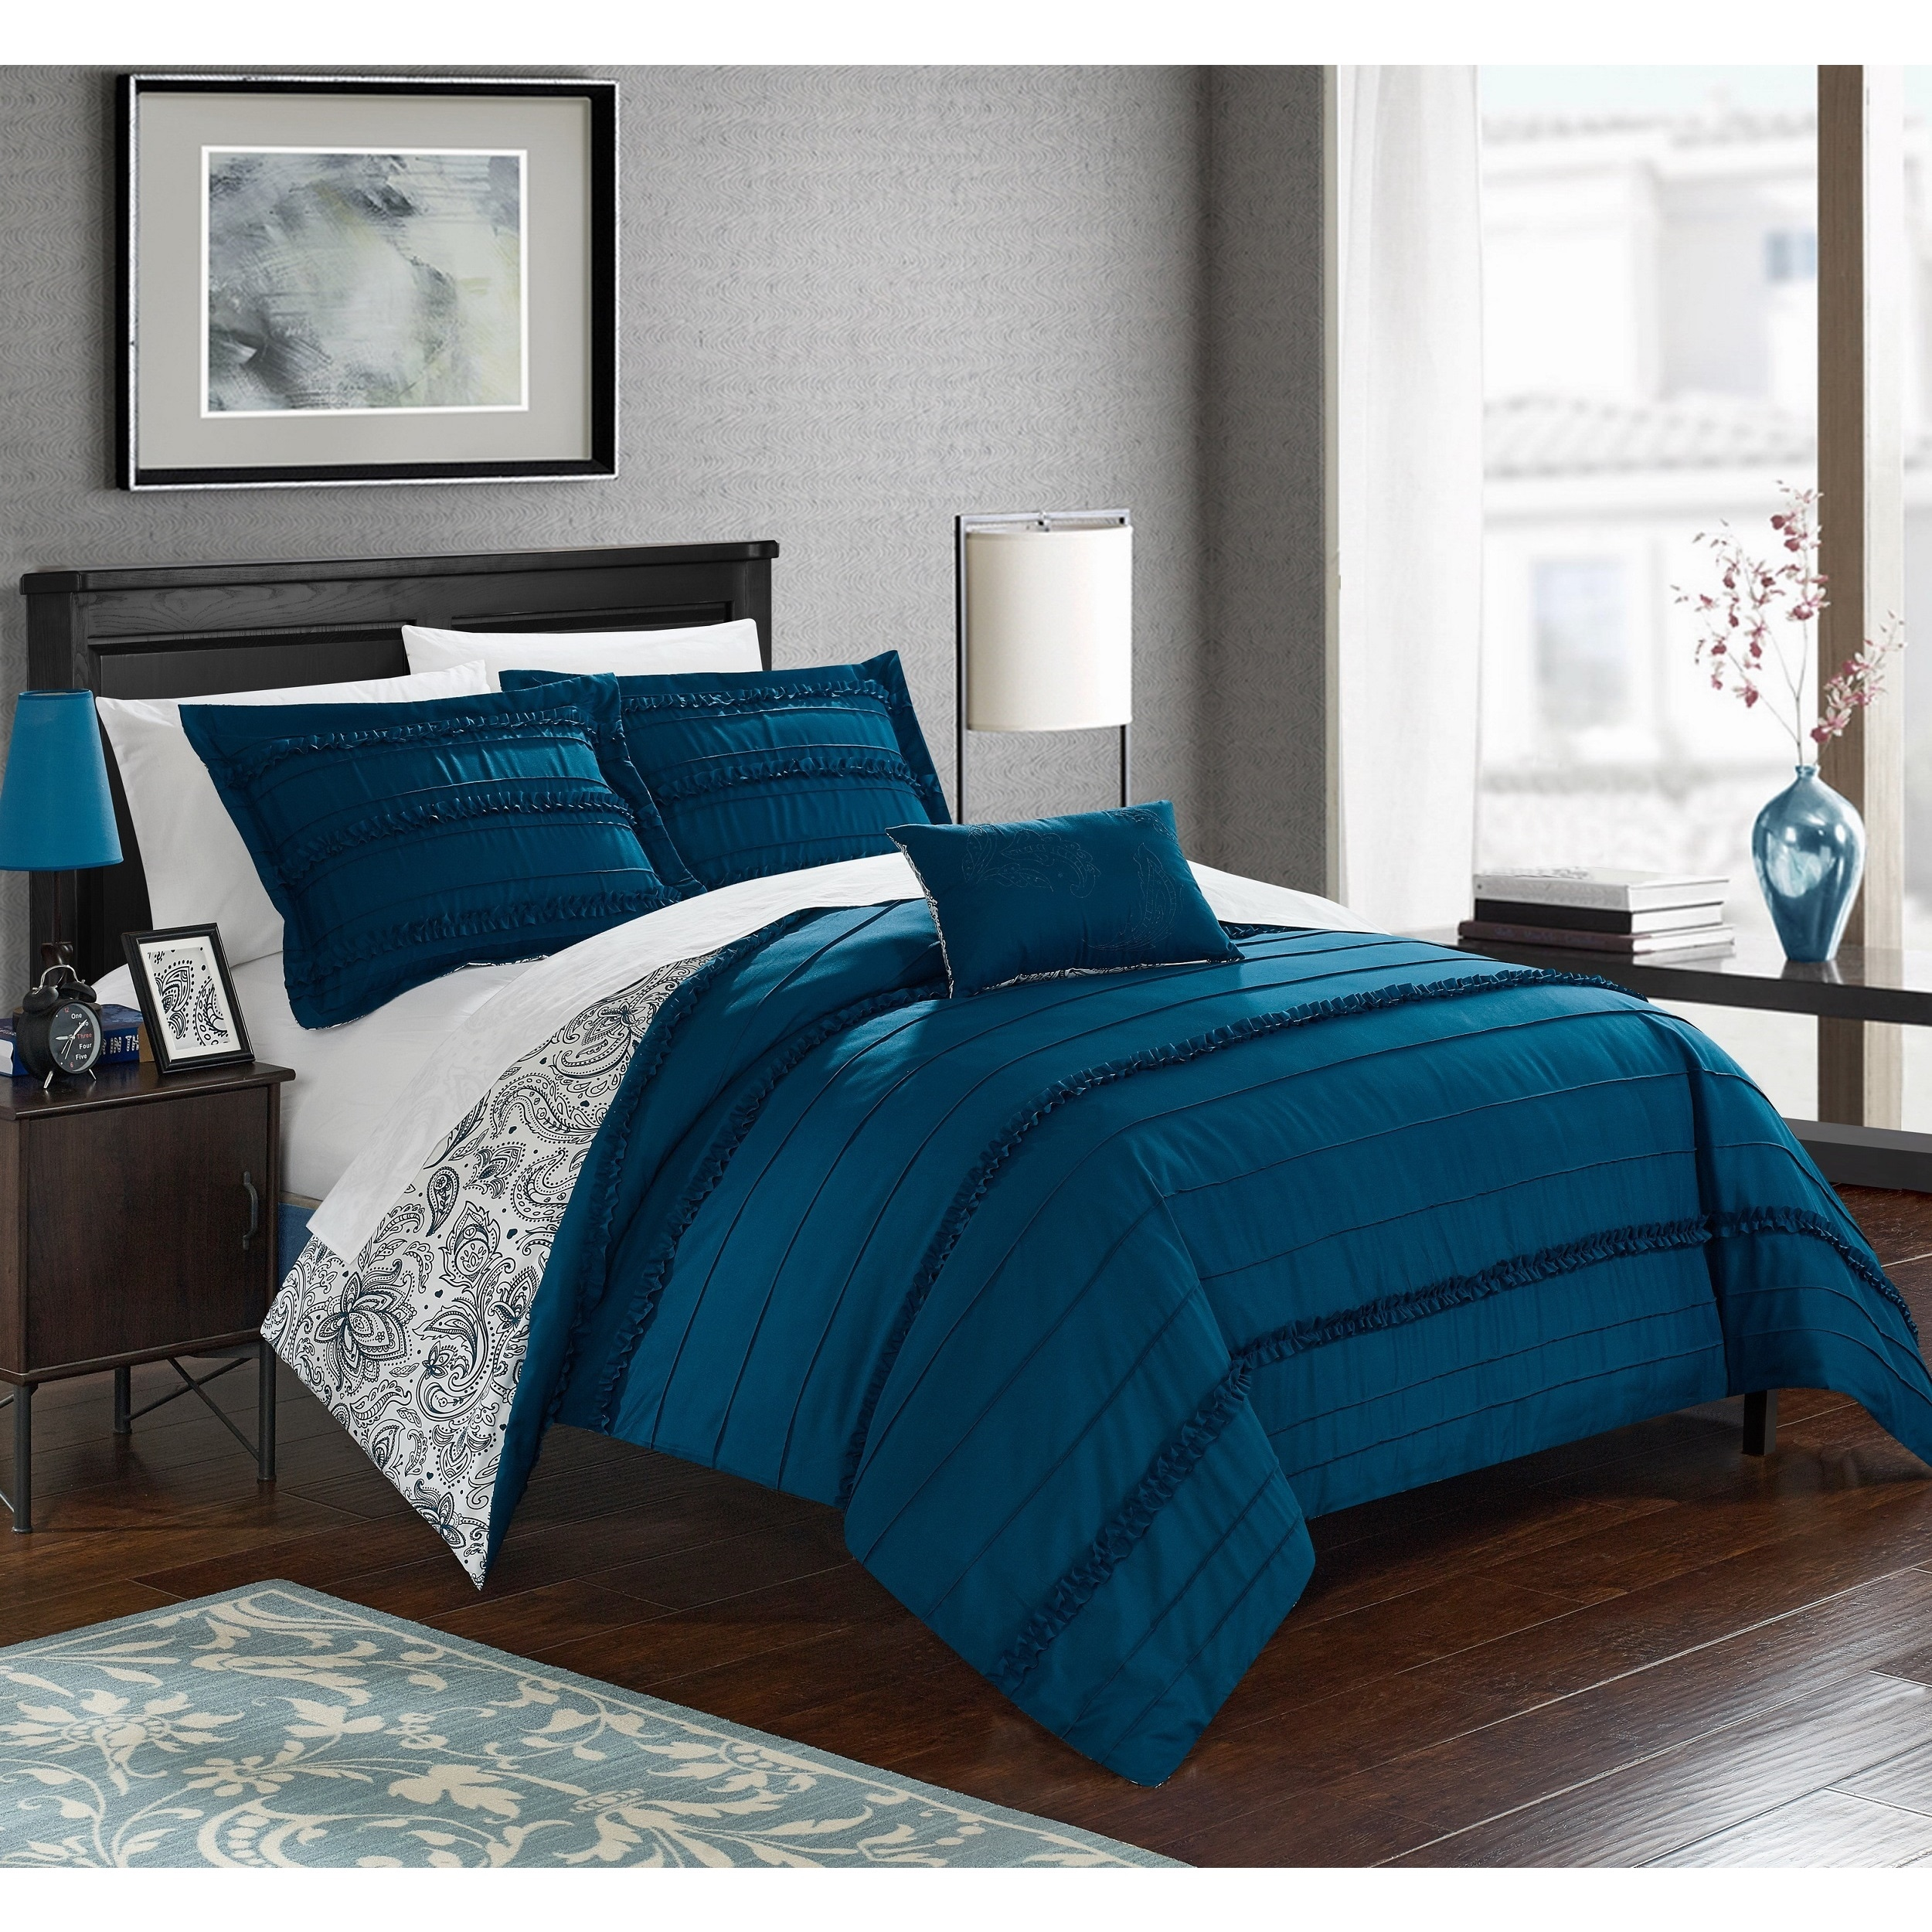 popular of cozy room full colorful king queen bedroom blue duvet size bedding comforter comforters set covers for white cover sets